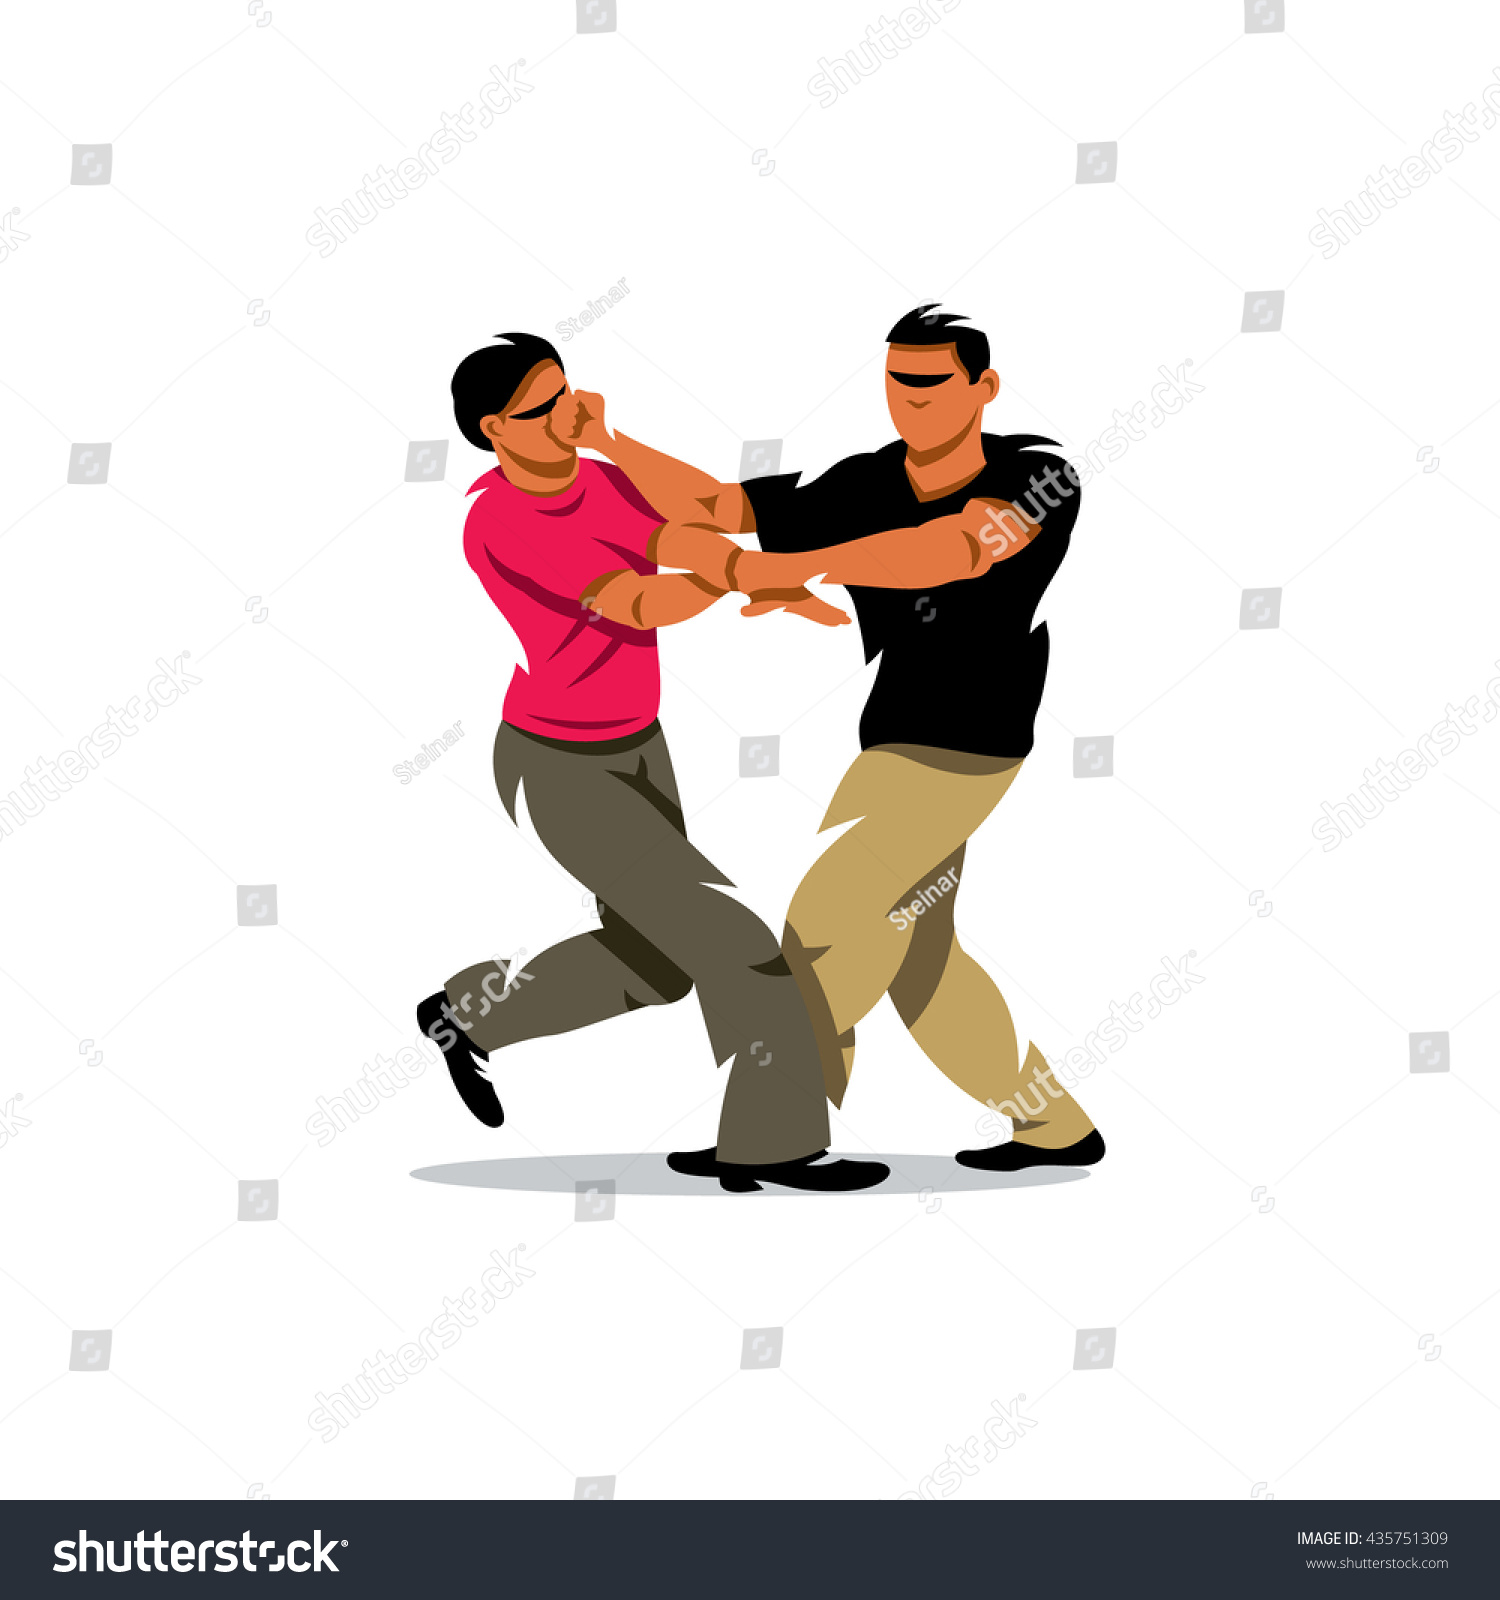 Two People Fighting Cartoon Pictures to Pin on Pinterest ...